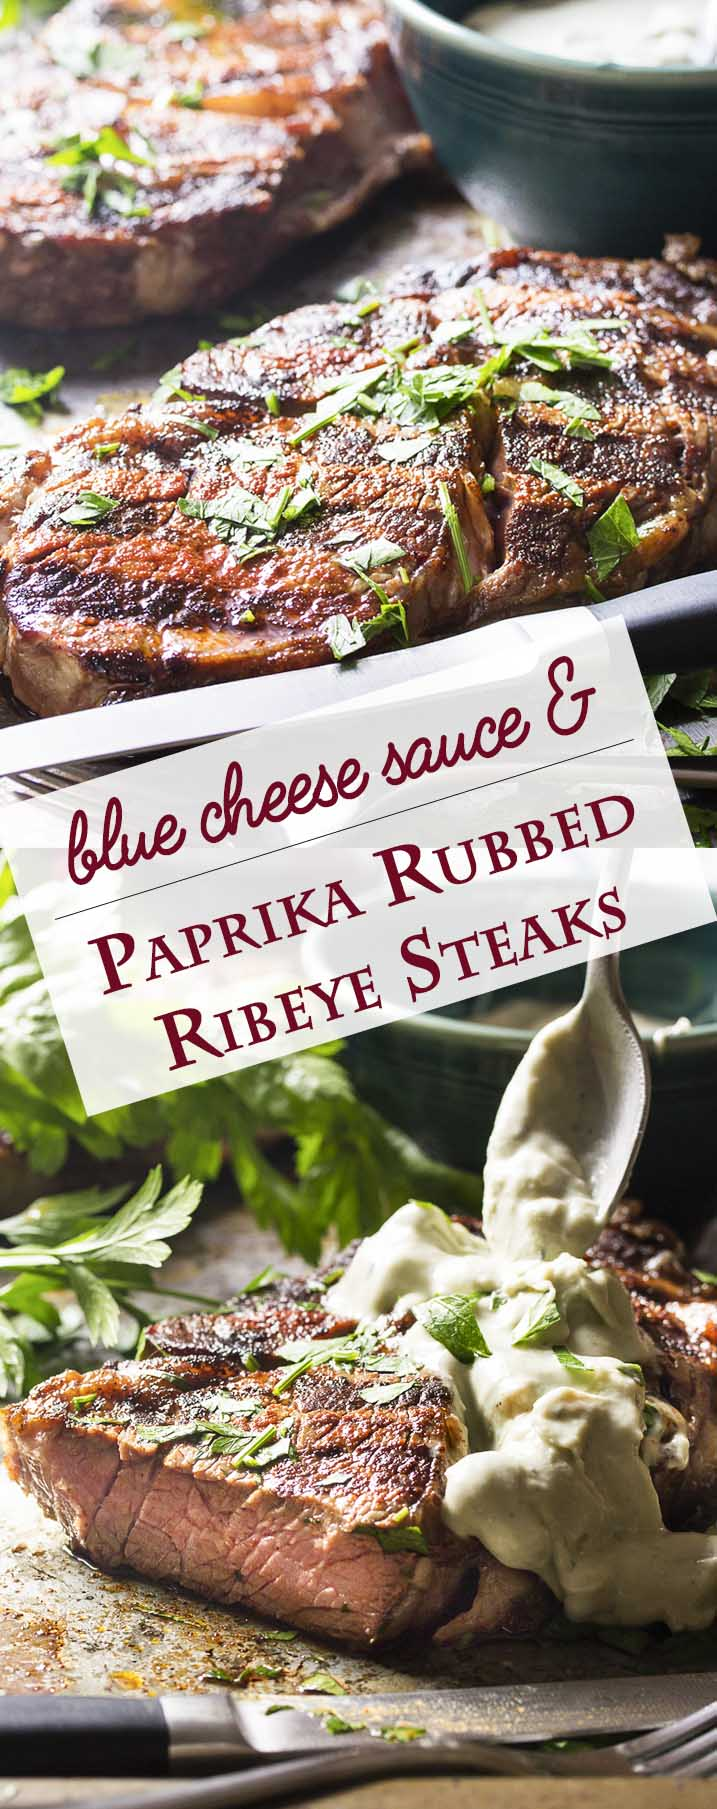 This Spanish inspired grilled ribeye steak is rubbed with paprika and smoked paprika and then topped with a blue cheese brandy sauce for an easy and flavorful main course. | justalittlebitofbacon.com